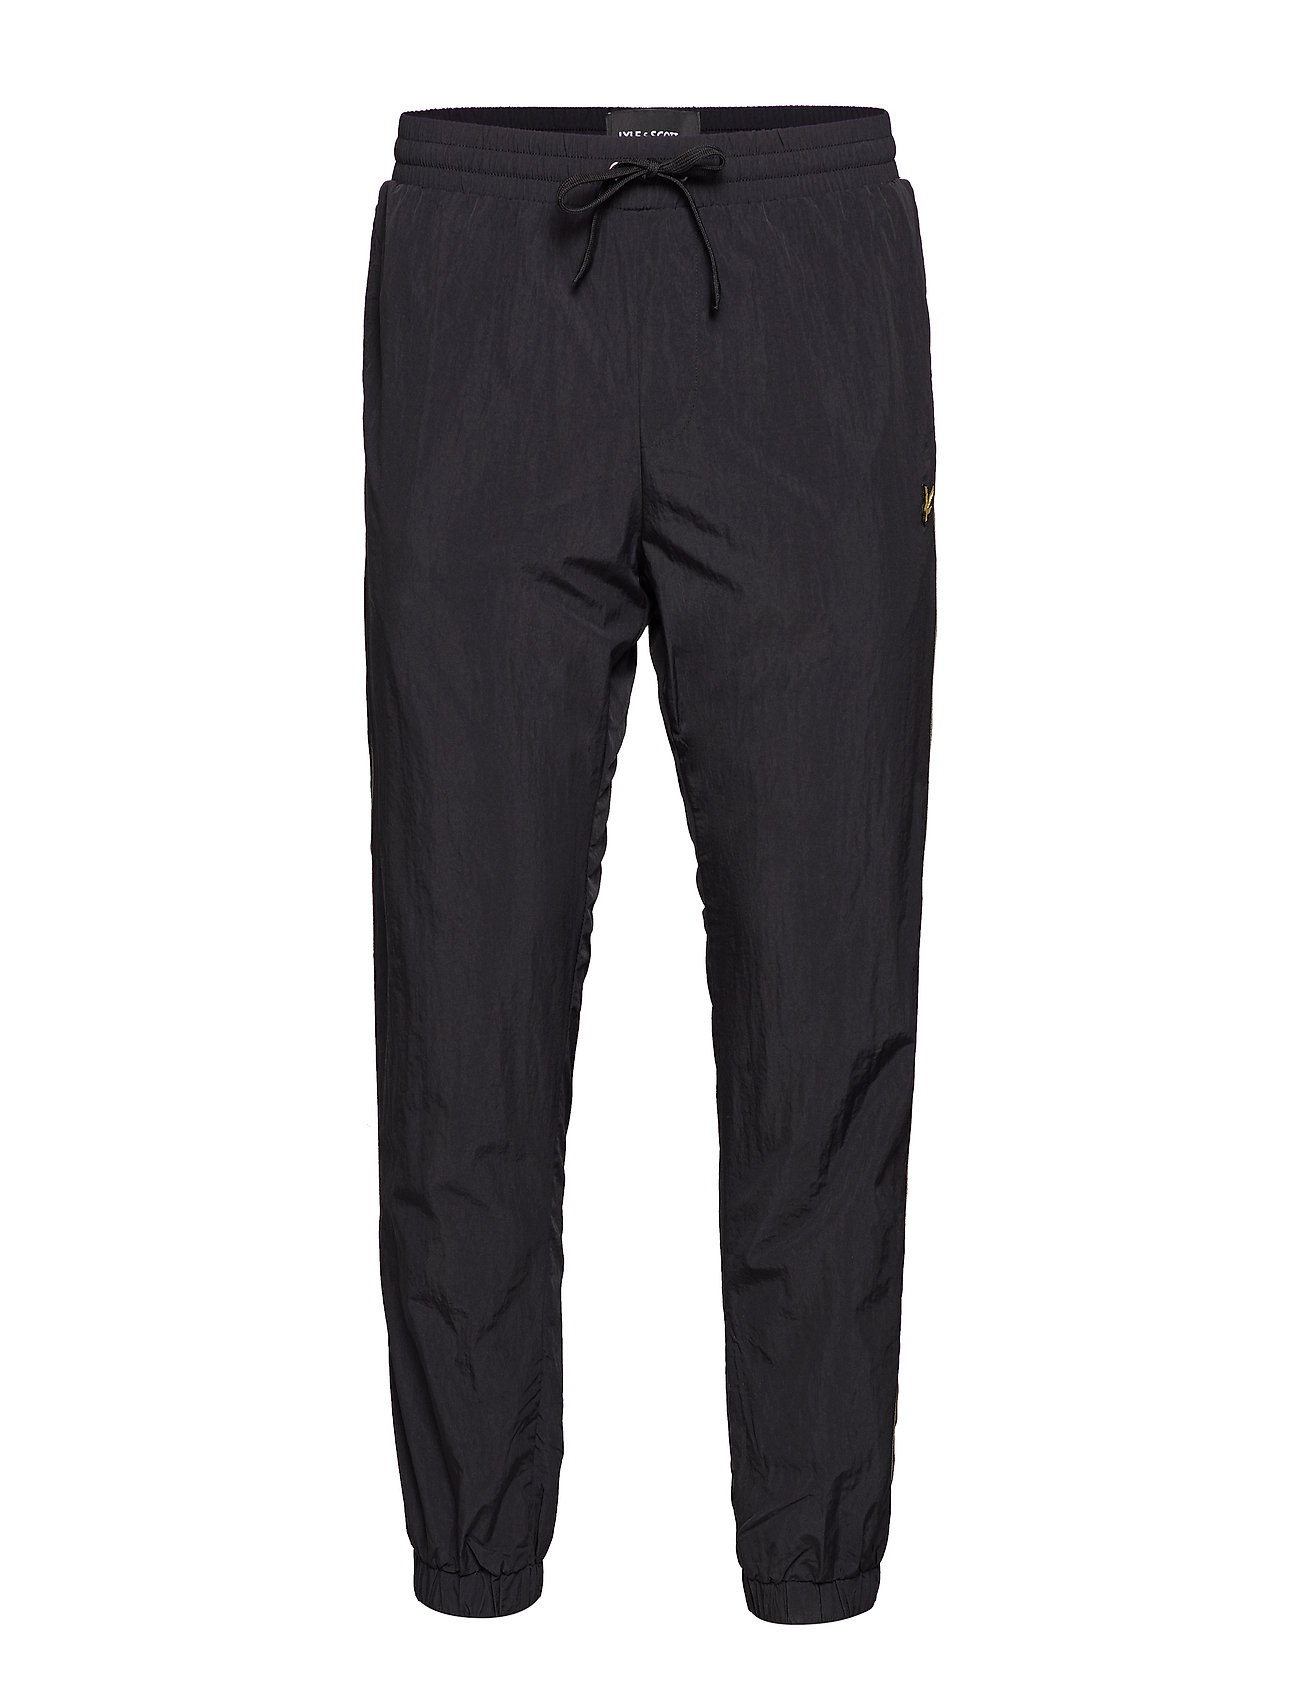 Lyle & Scott TAPED SWEATPANT - TRUE BLACK